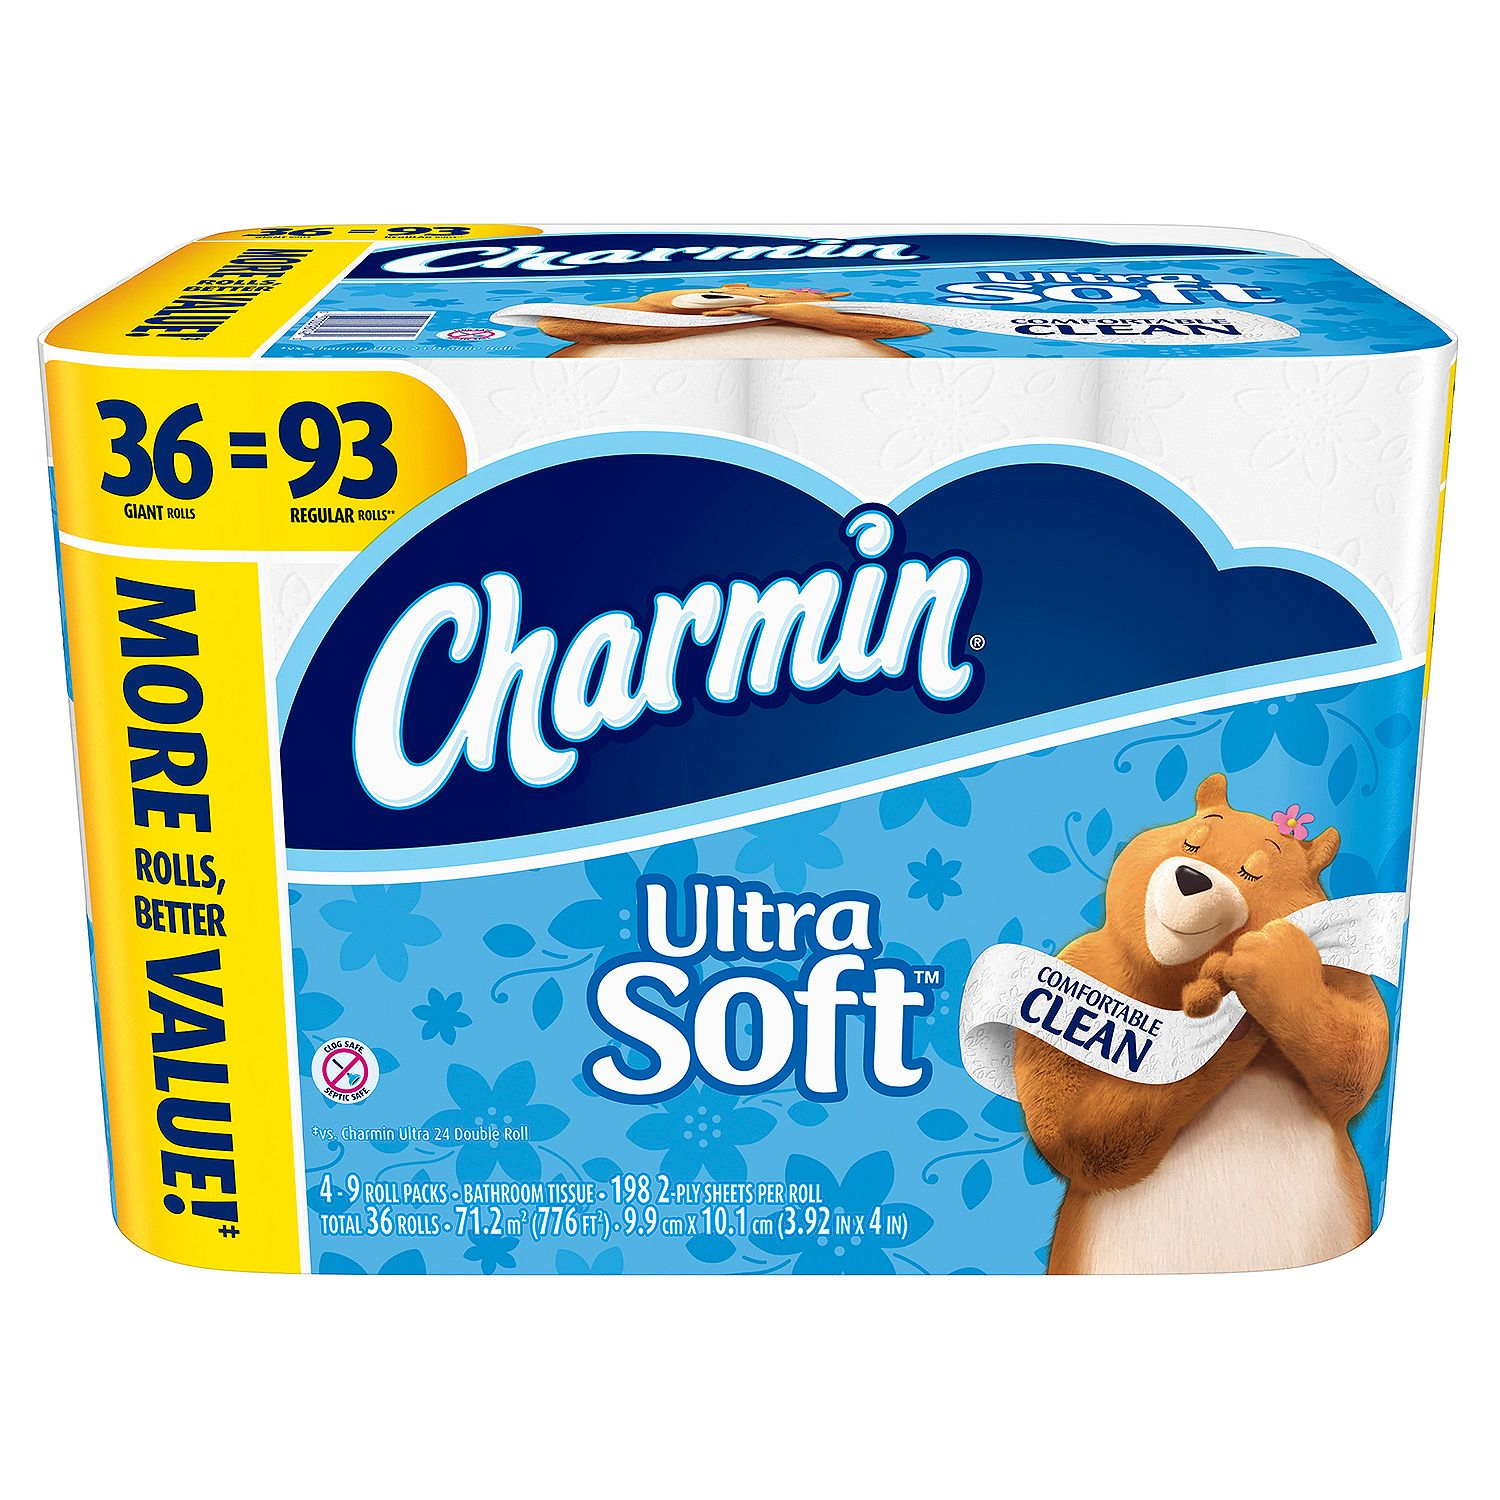 Charmin Toilet Paper On Sale: Charmin Ultra Soft Bathroom Tissue 36 Giant Rolls = 93 Regular